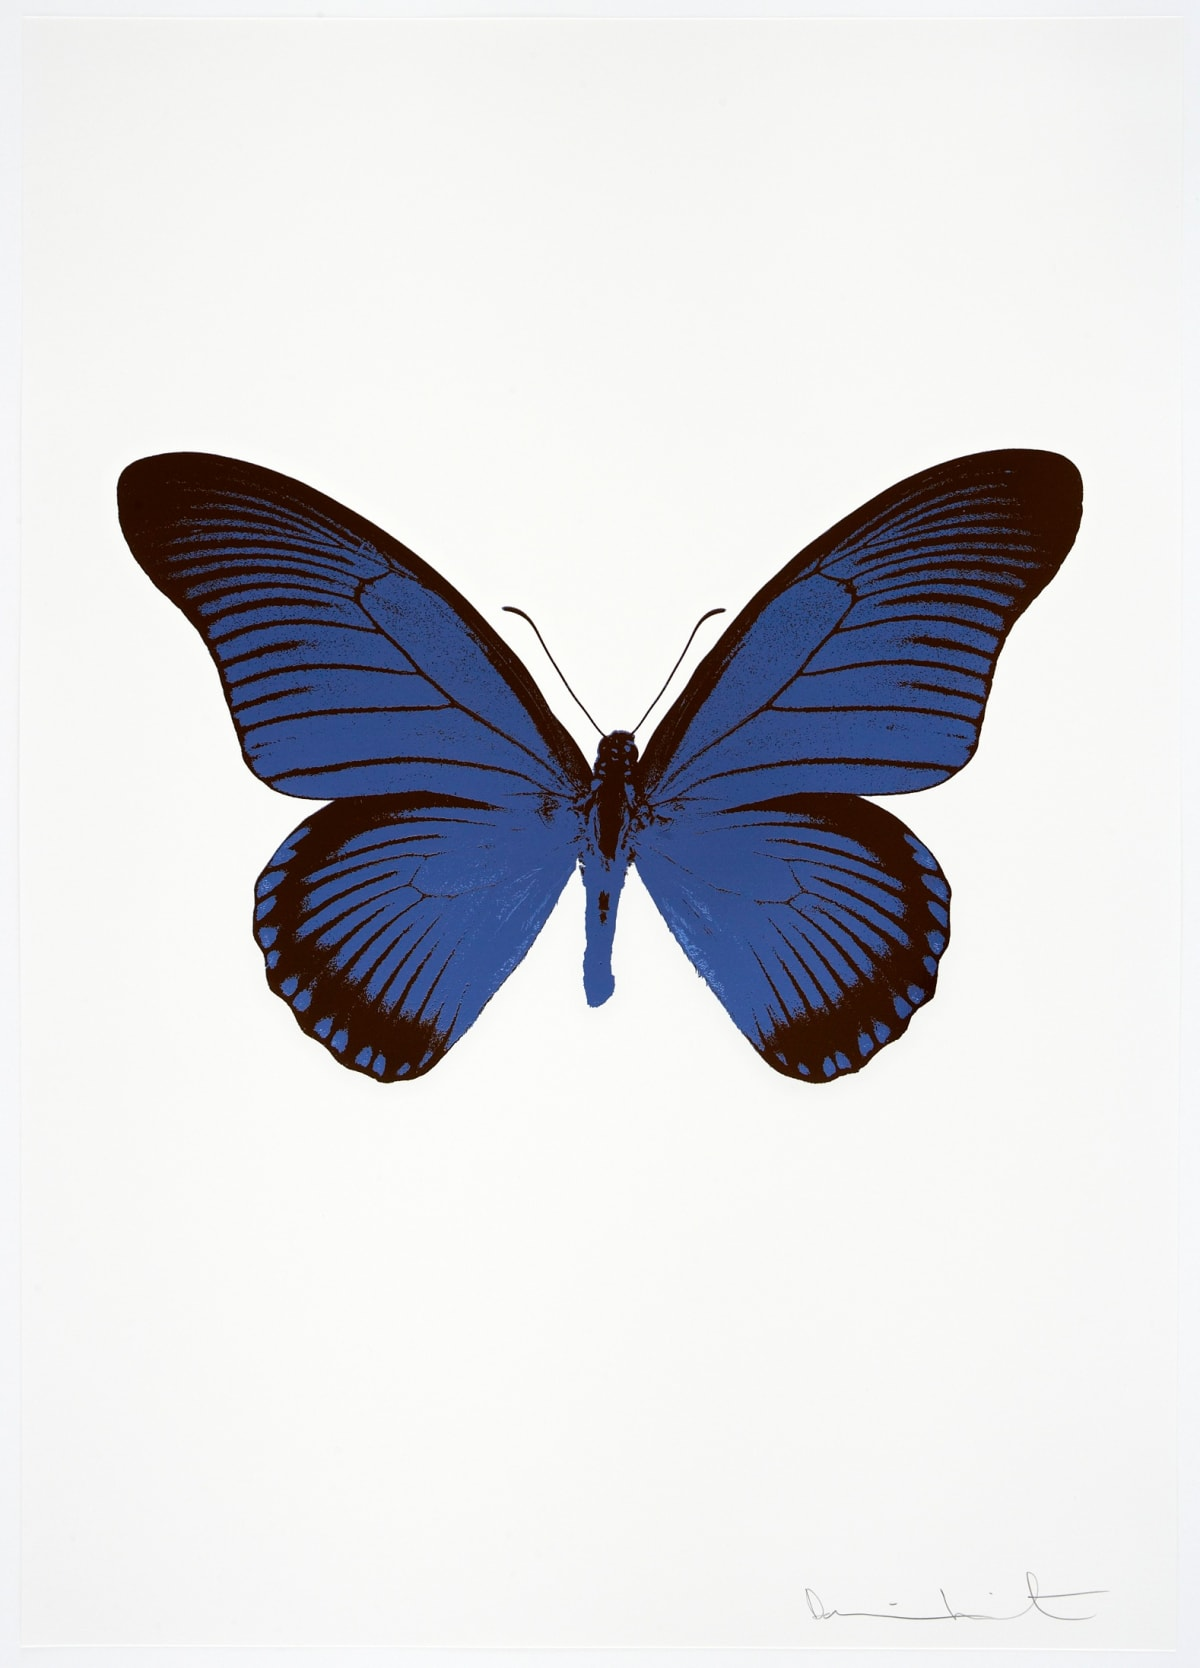 Damien Hirst The Souls IV - Frost Blue/Chocolate Damien Hirst butterfly foil print for sale Damien Hirst print for sale , 2010 2 colour foil block on 300gsm Arches 88 archival paper. Signed and numbered. Published by Paul Stolper and Other Criteria 72 x 51cm OC7997 / 1418-20 Edition of 15